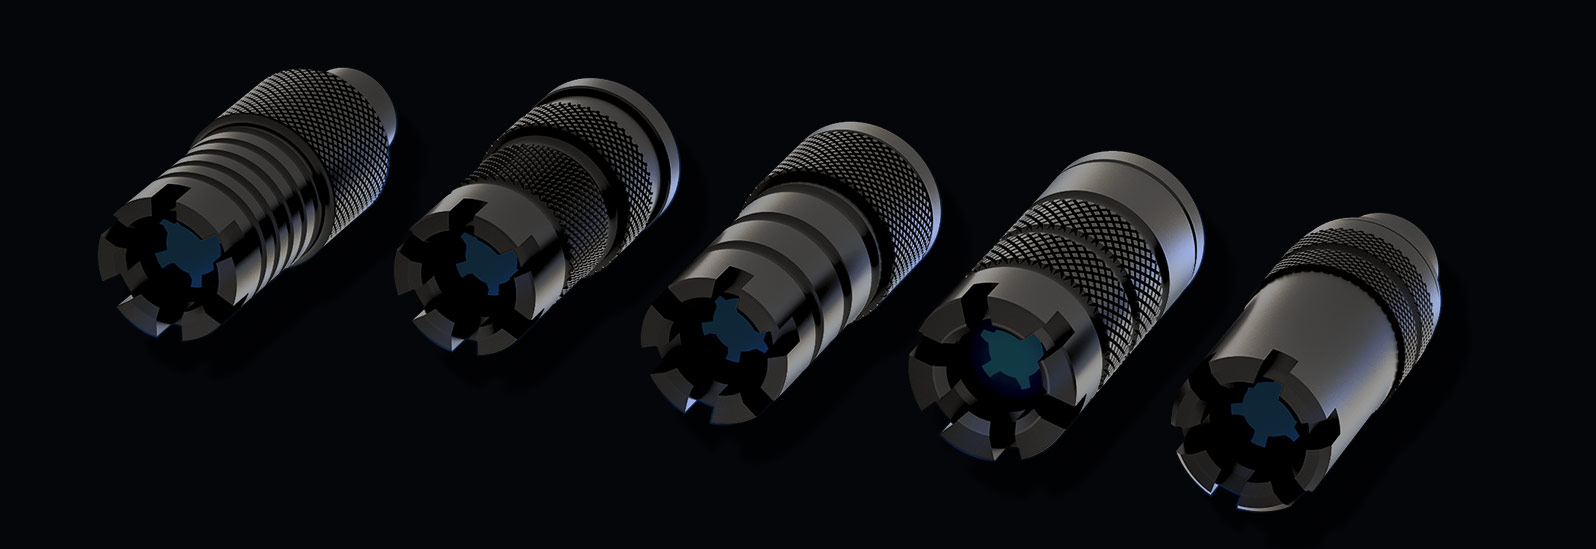 Lasertag Optics Parallax series